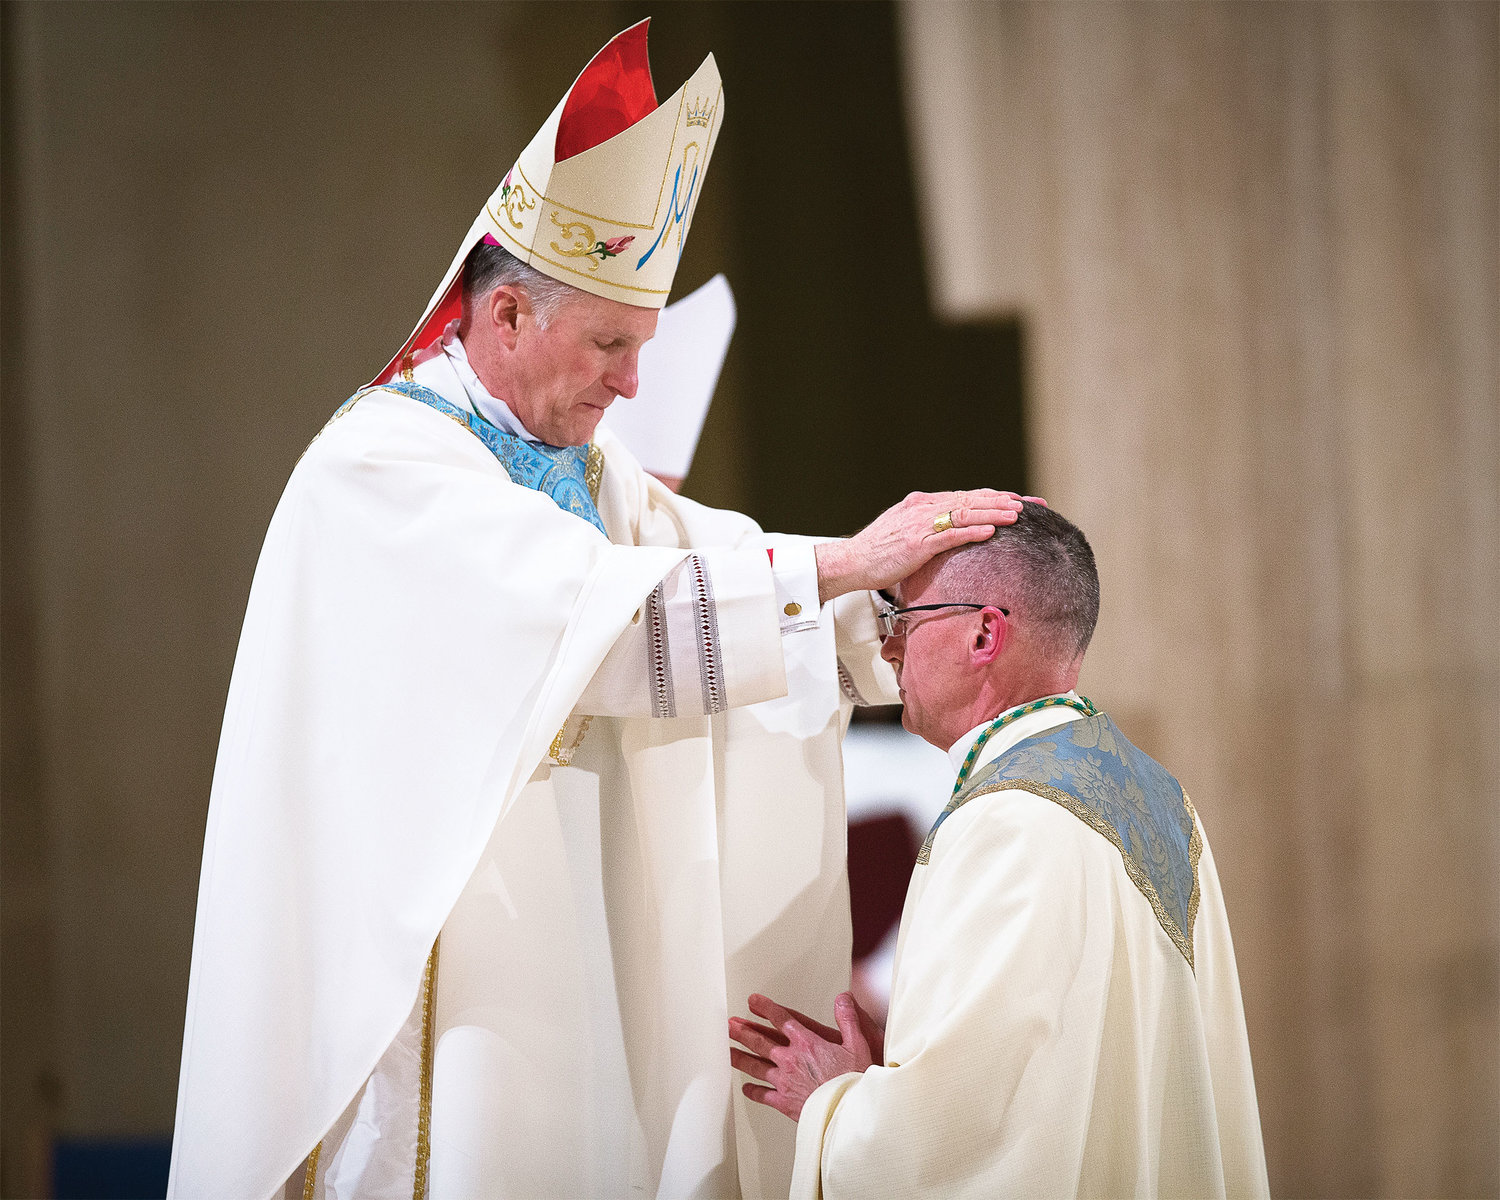 Archbishop Timothy P. Broglio of the U.S. Archdiocese for the Military Services lays his hands upon the head of Auxiliary Bishop William J. Muhm during his episcopal ordination at the Basilica of the National Shrine of the Immaculate Conception in Washington, D.C., March 25.